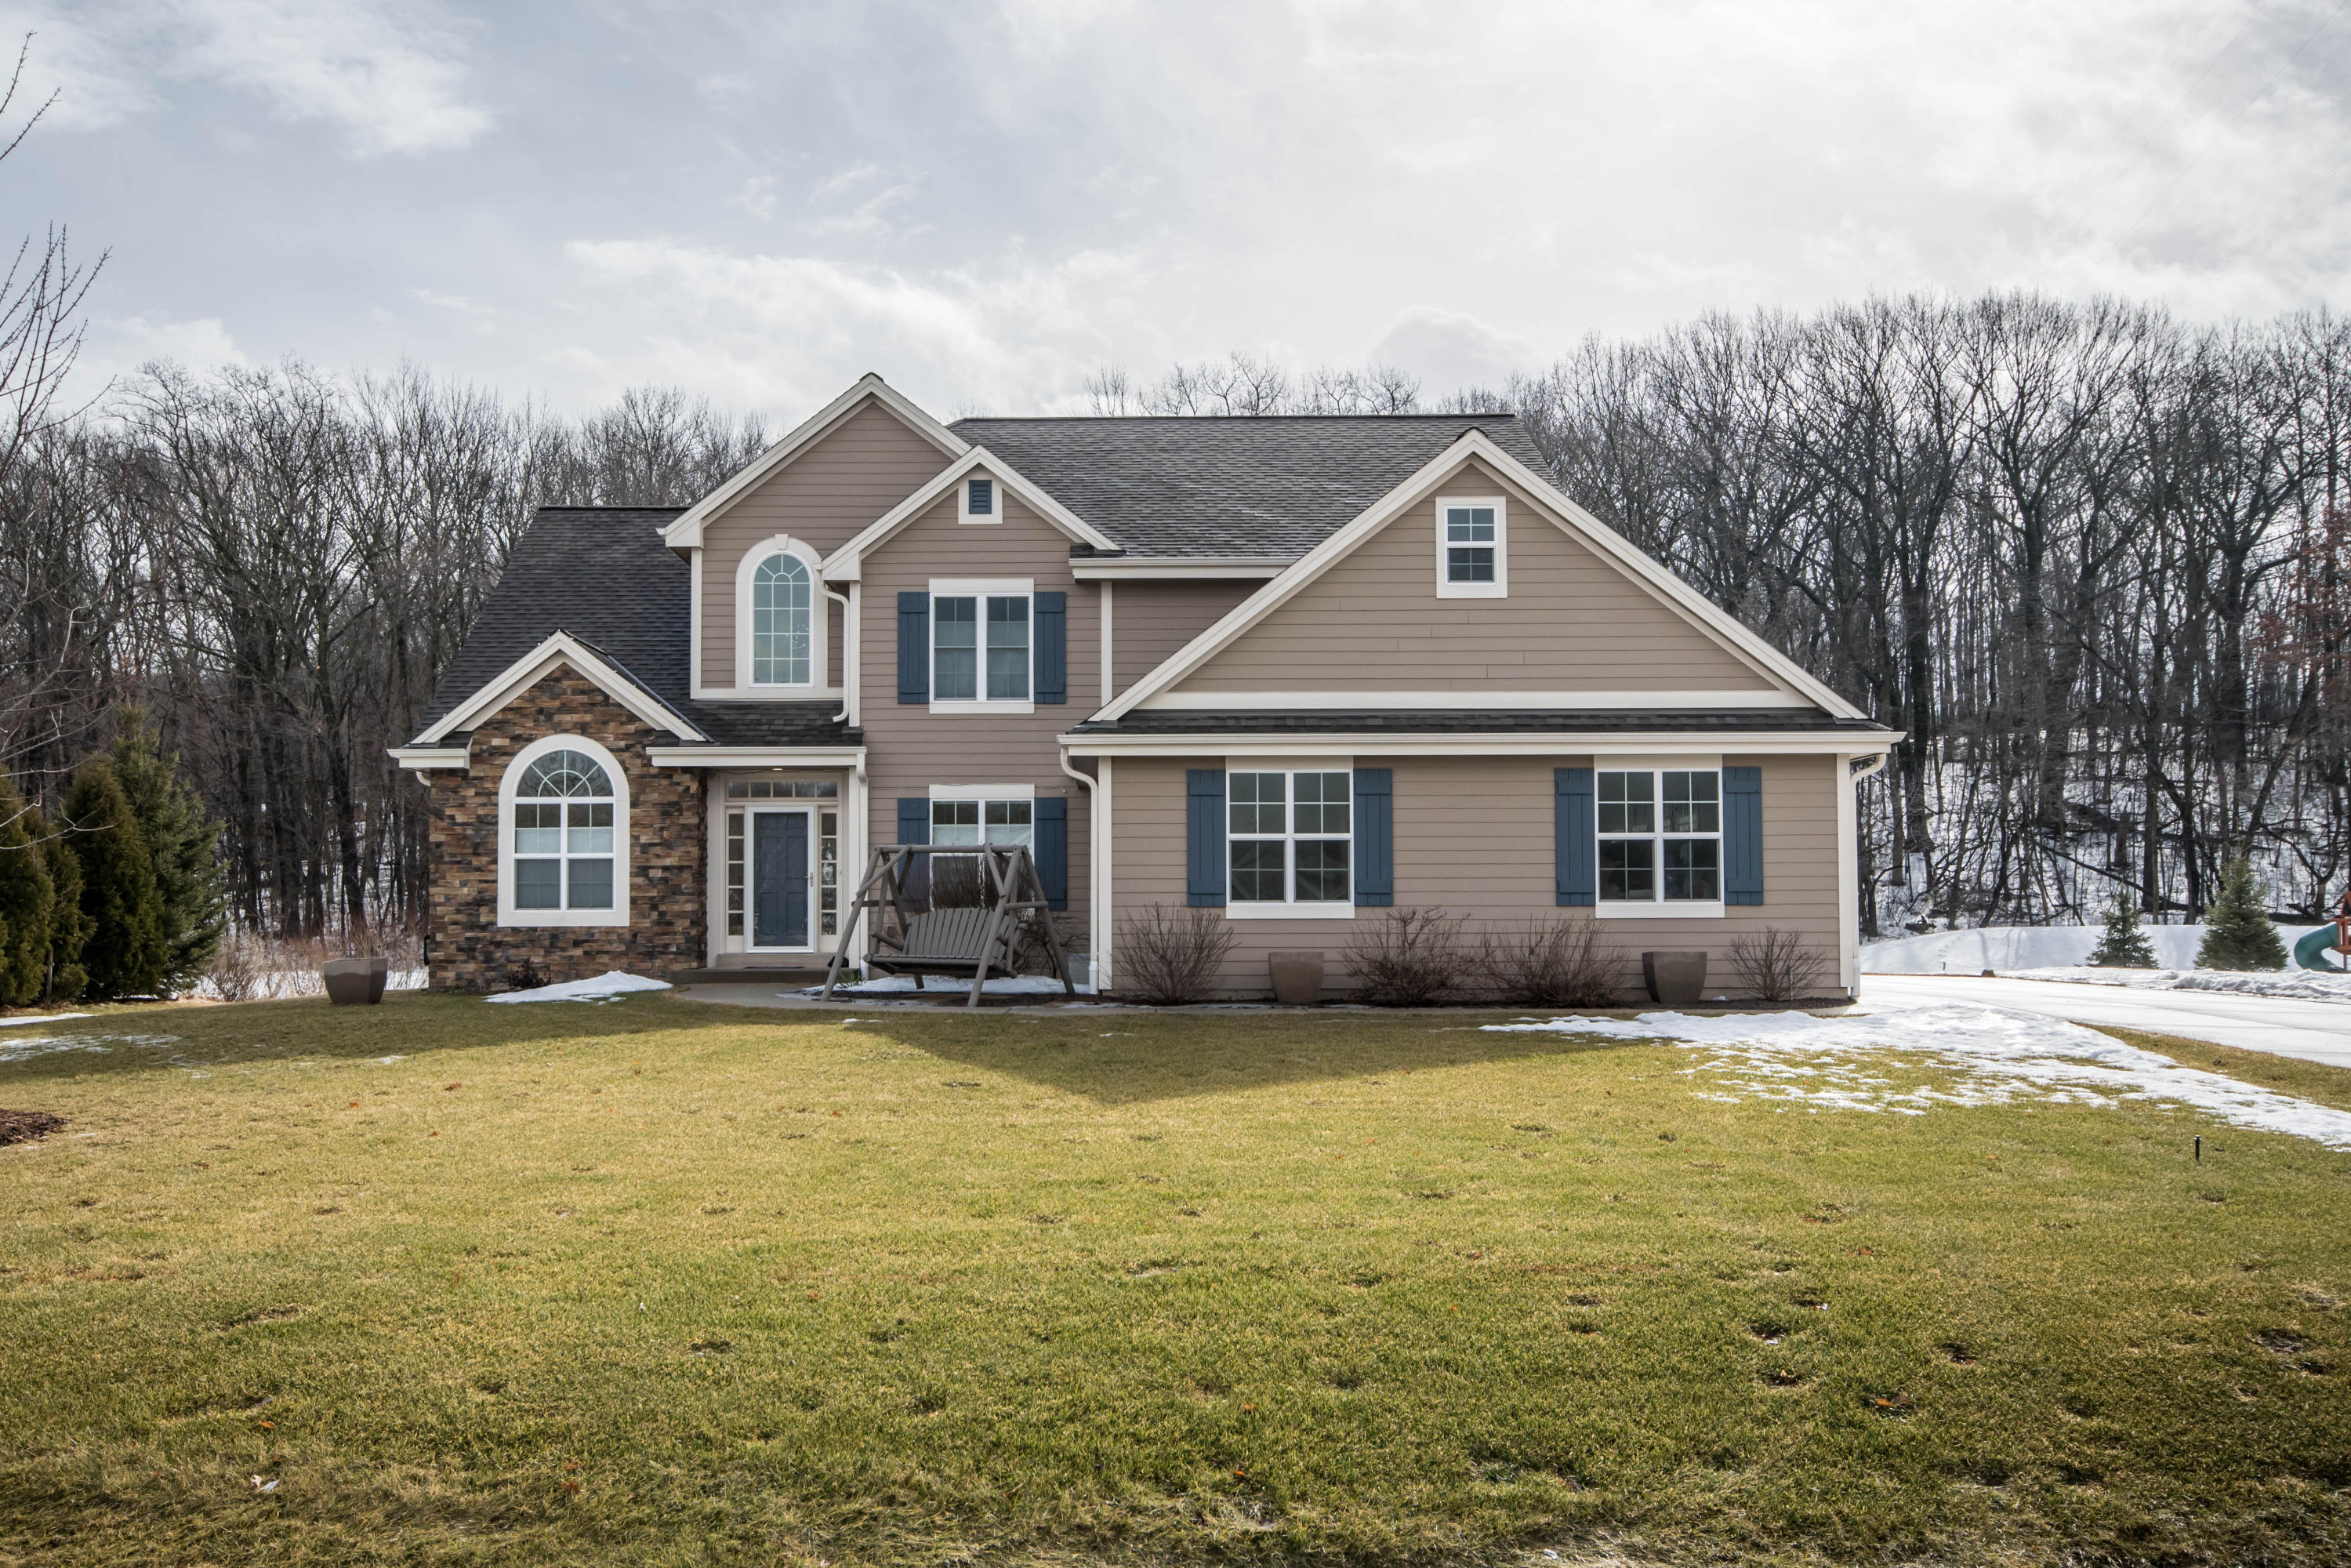 W221S4072 Crestview Dr, Waukesha, Wisconsin 53189, 4 Bedrooms Bedrooms, 9 Rooms Rooms,4 BathroomsBathrooms,Single-Family,For Sale,Crestview Dr,1626418